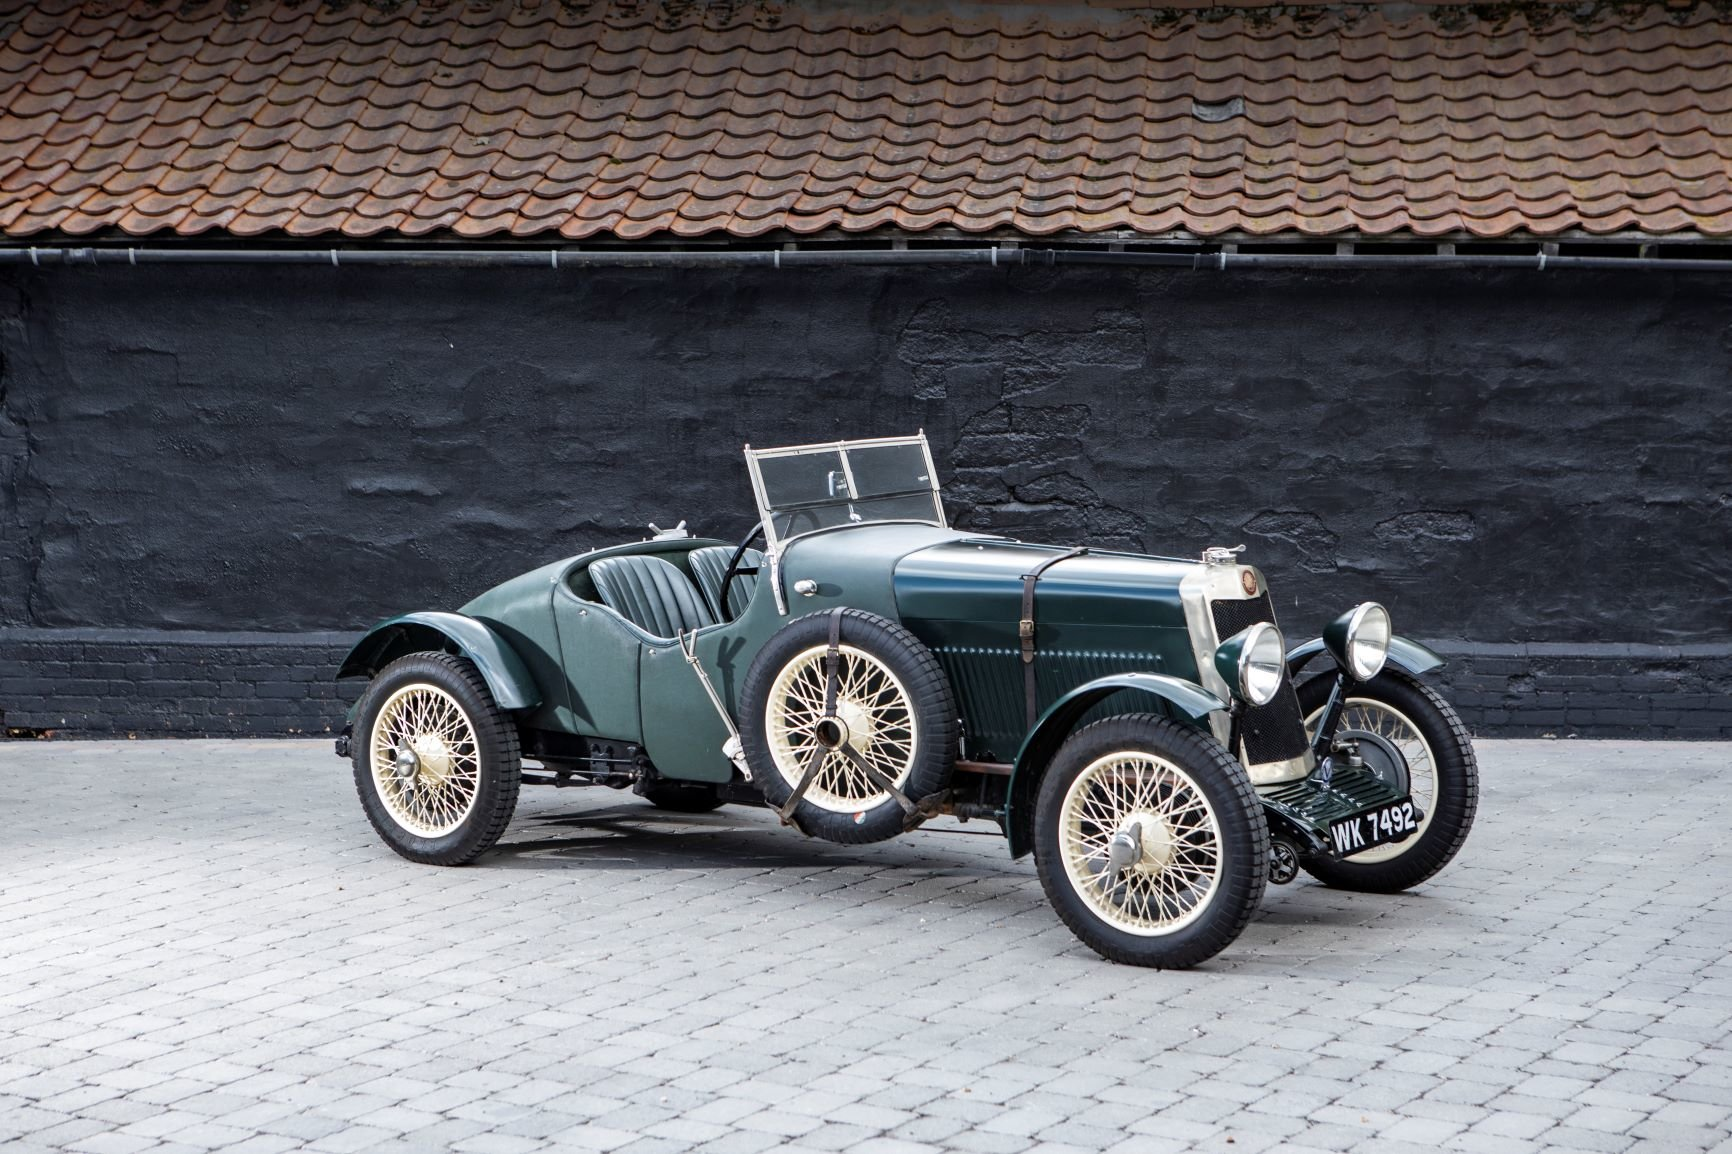 1928 Lea-Francis 1½-Litre The ex-Works, Wilf Green For Sale (picture 1 of 6)